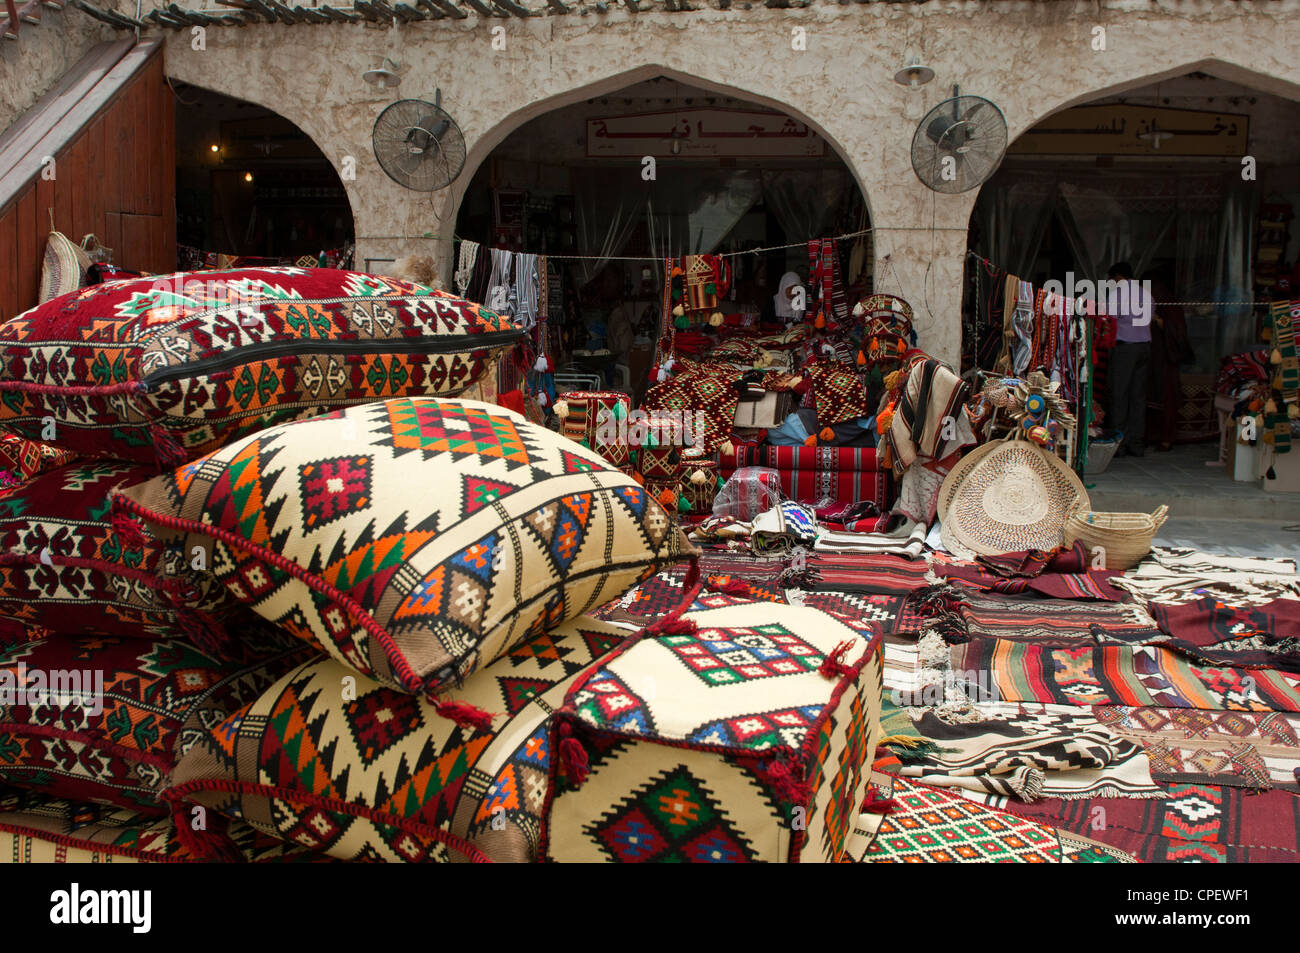 Market stall for carpets and cushions at the souq of Doha, Qatar - Stock Image